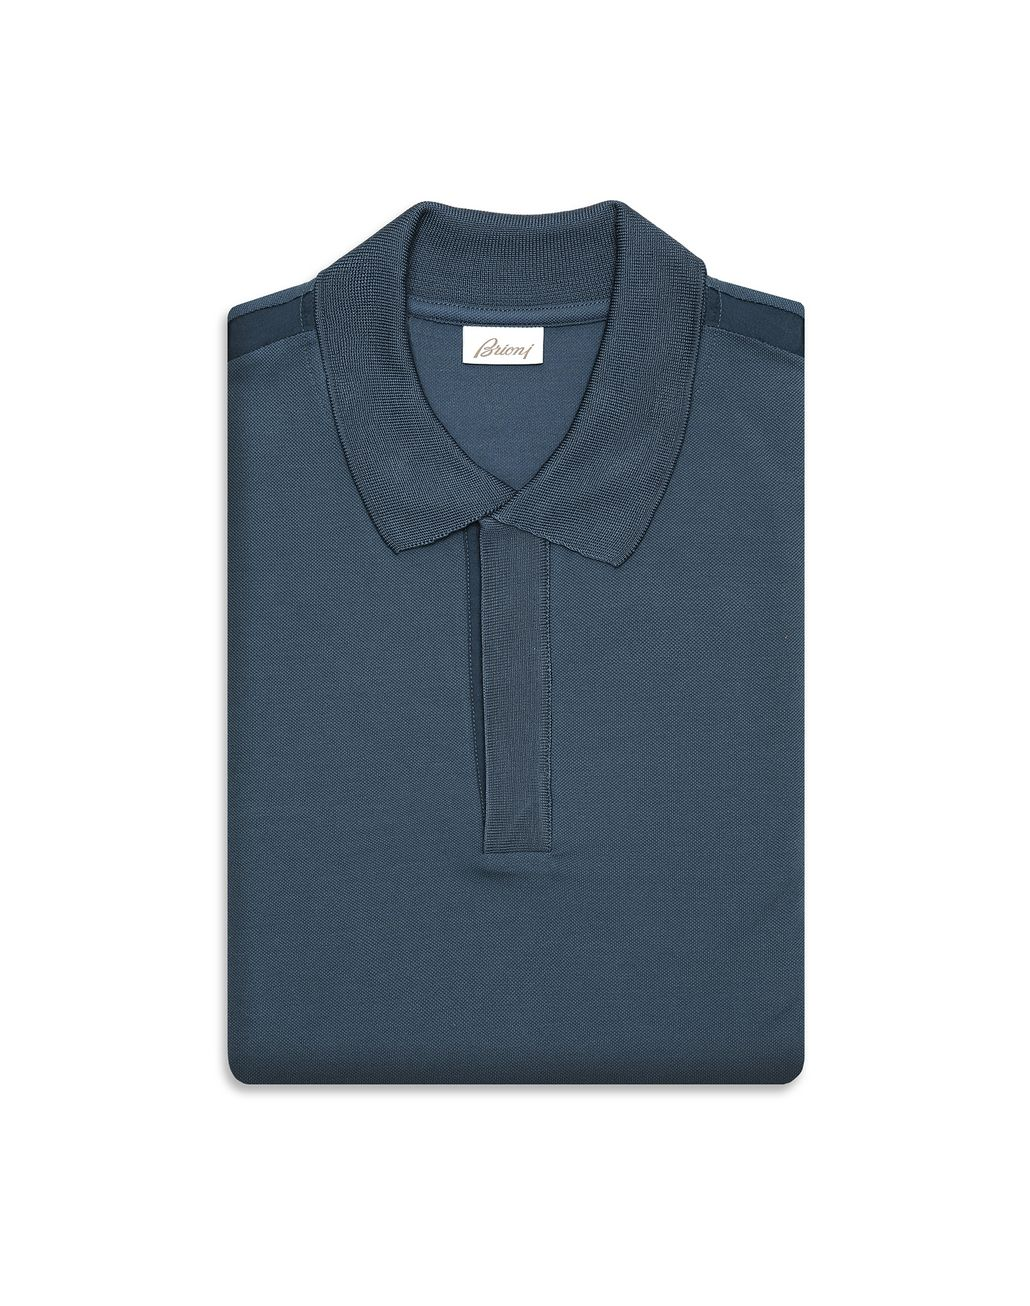 BRIONI Navy Blue Buttonless Piquet Polo Shirt T-Shirts & Polos Man e